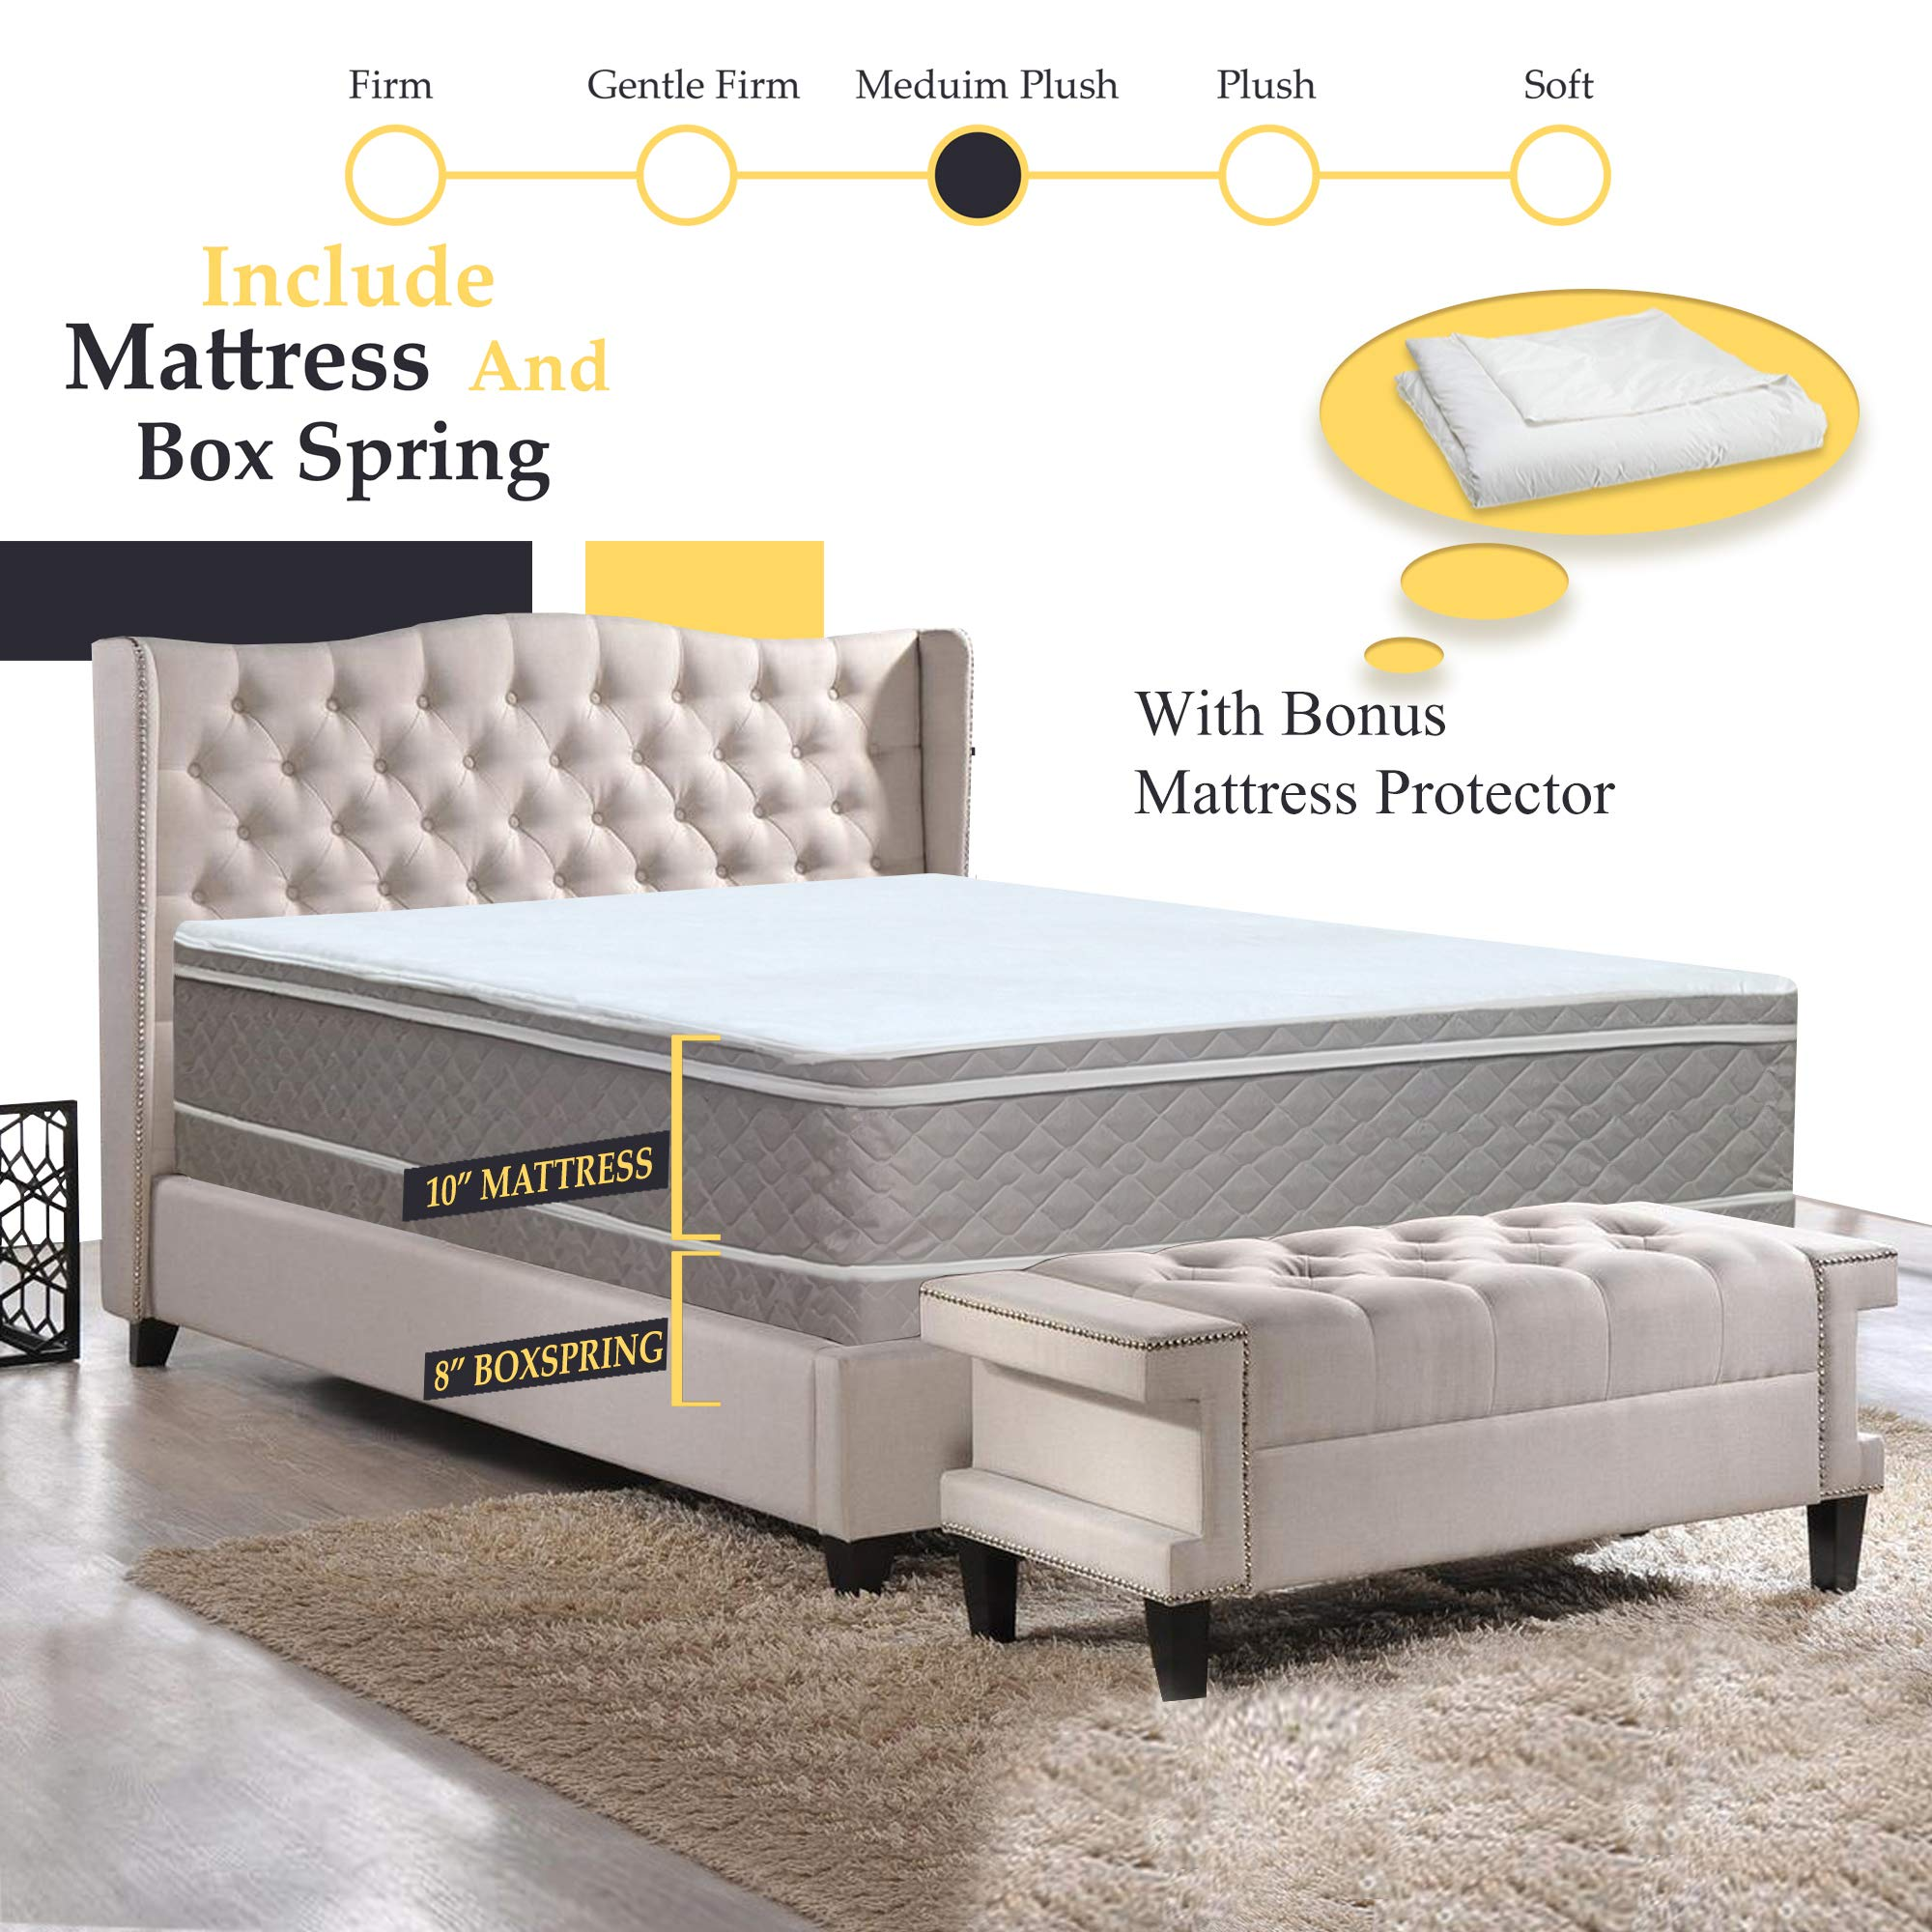 GREATON 440v-5/0-2 Plush Innerspring Eurotop Mattress and Box Spring/Foundation Set, No Assembly Required, Queen by GREATON